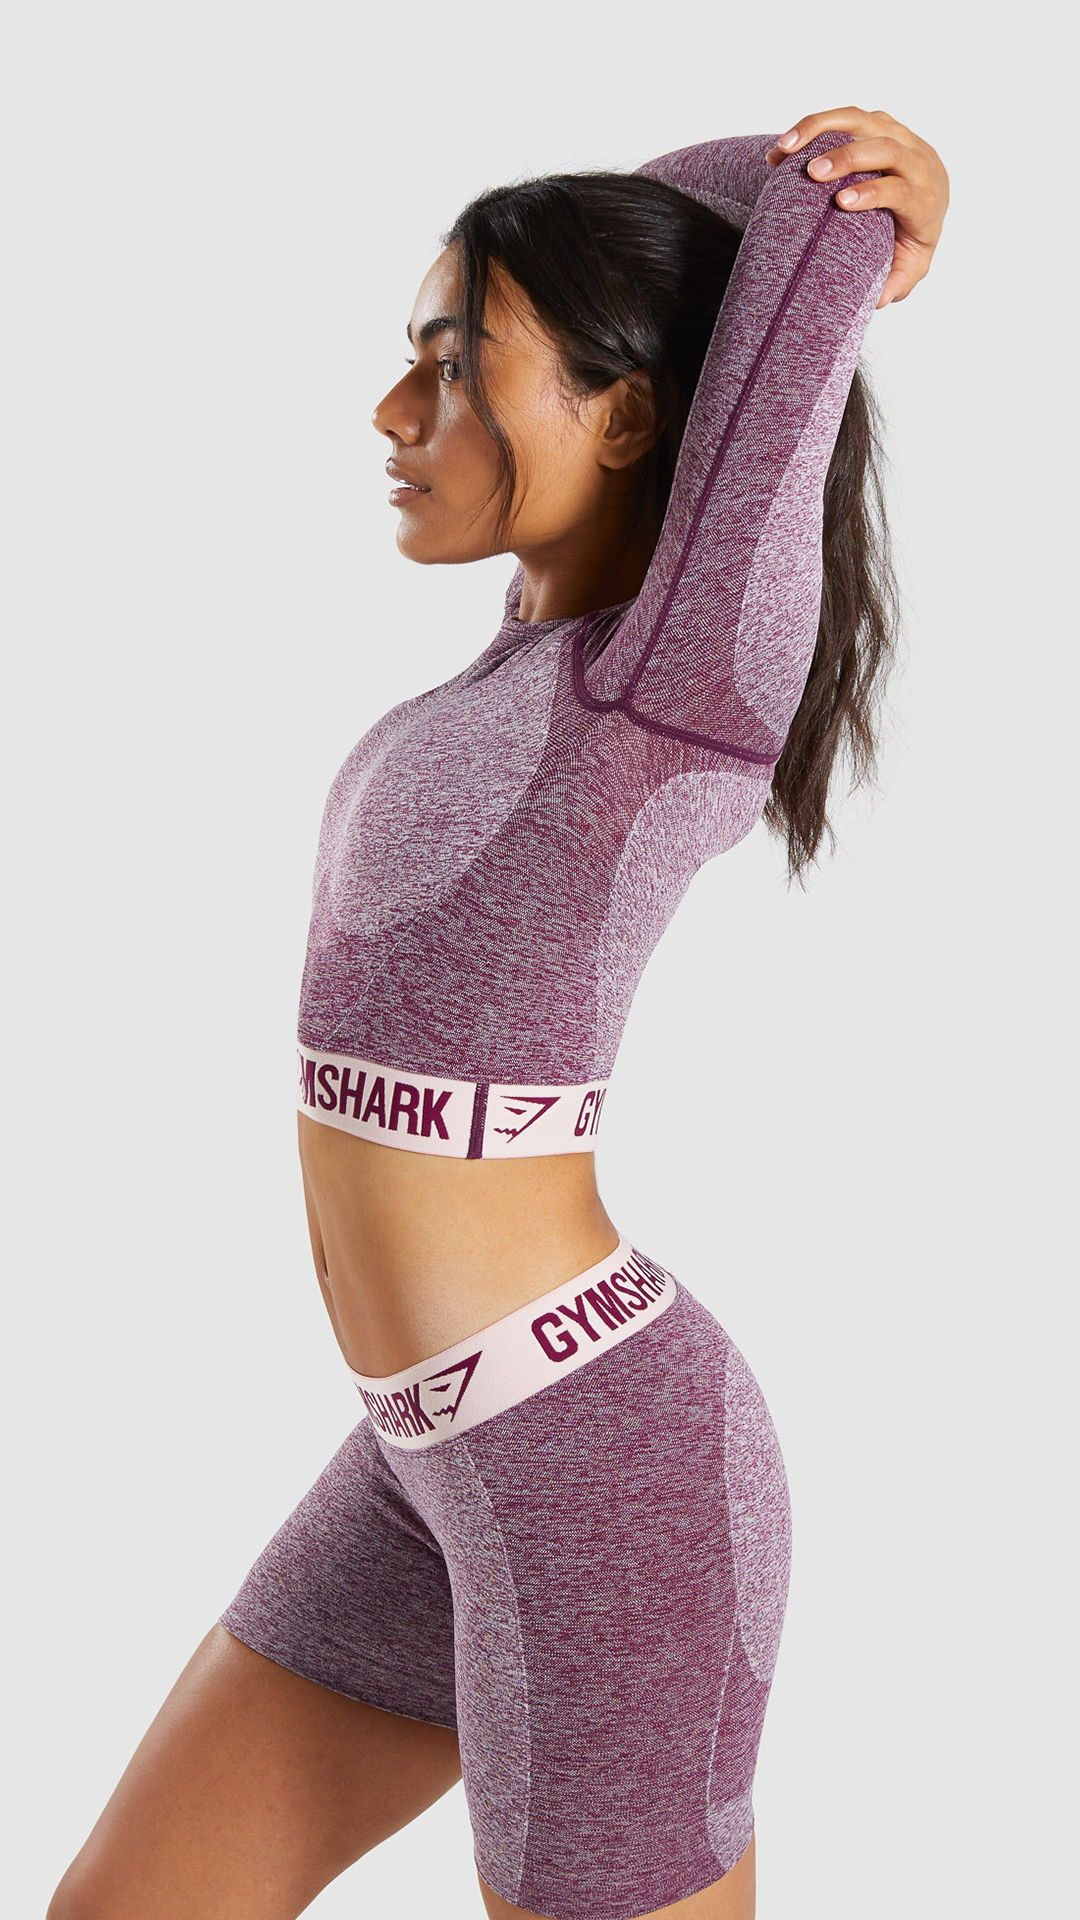 7118819d99ffd The Gymshark Flex Long Sleeve Crop Top, Dark Ruby Marl/ Blush Nude.  Combining our signature seamless knit with superior, sculpting design.